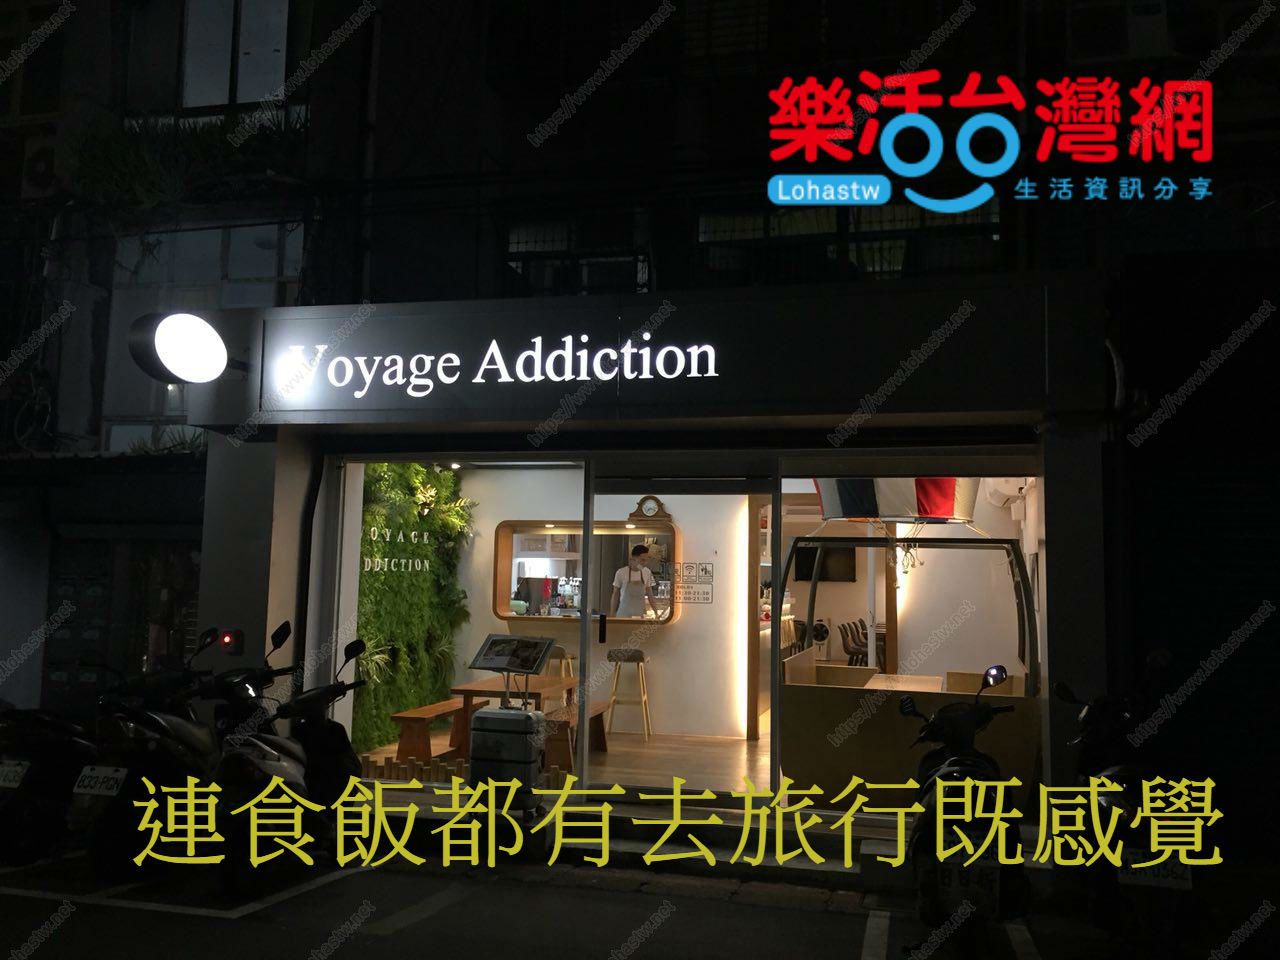 Voyage Addiction Cafe 旅行。家  連食飯都有去旅行既感覺